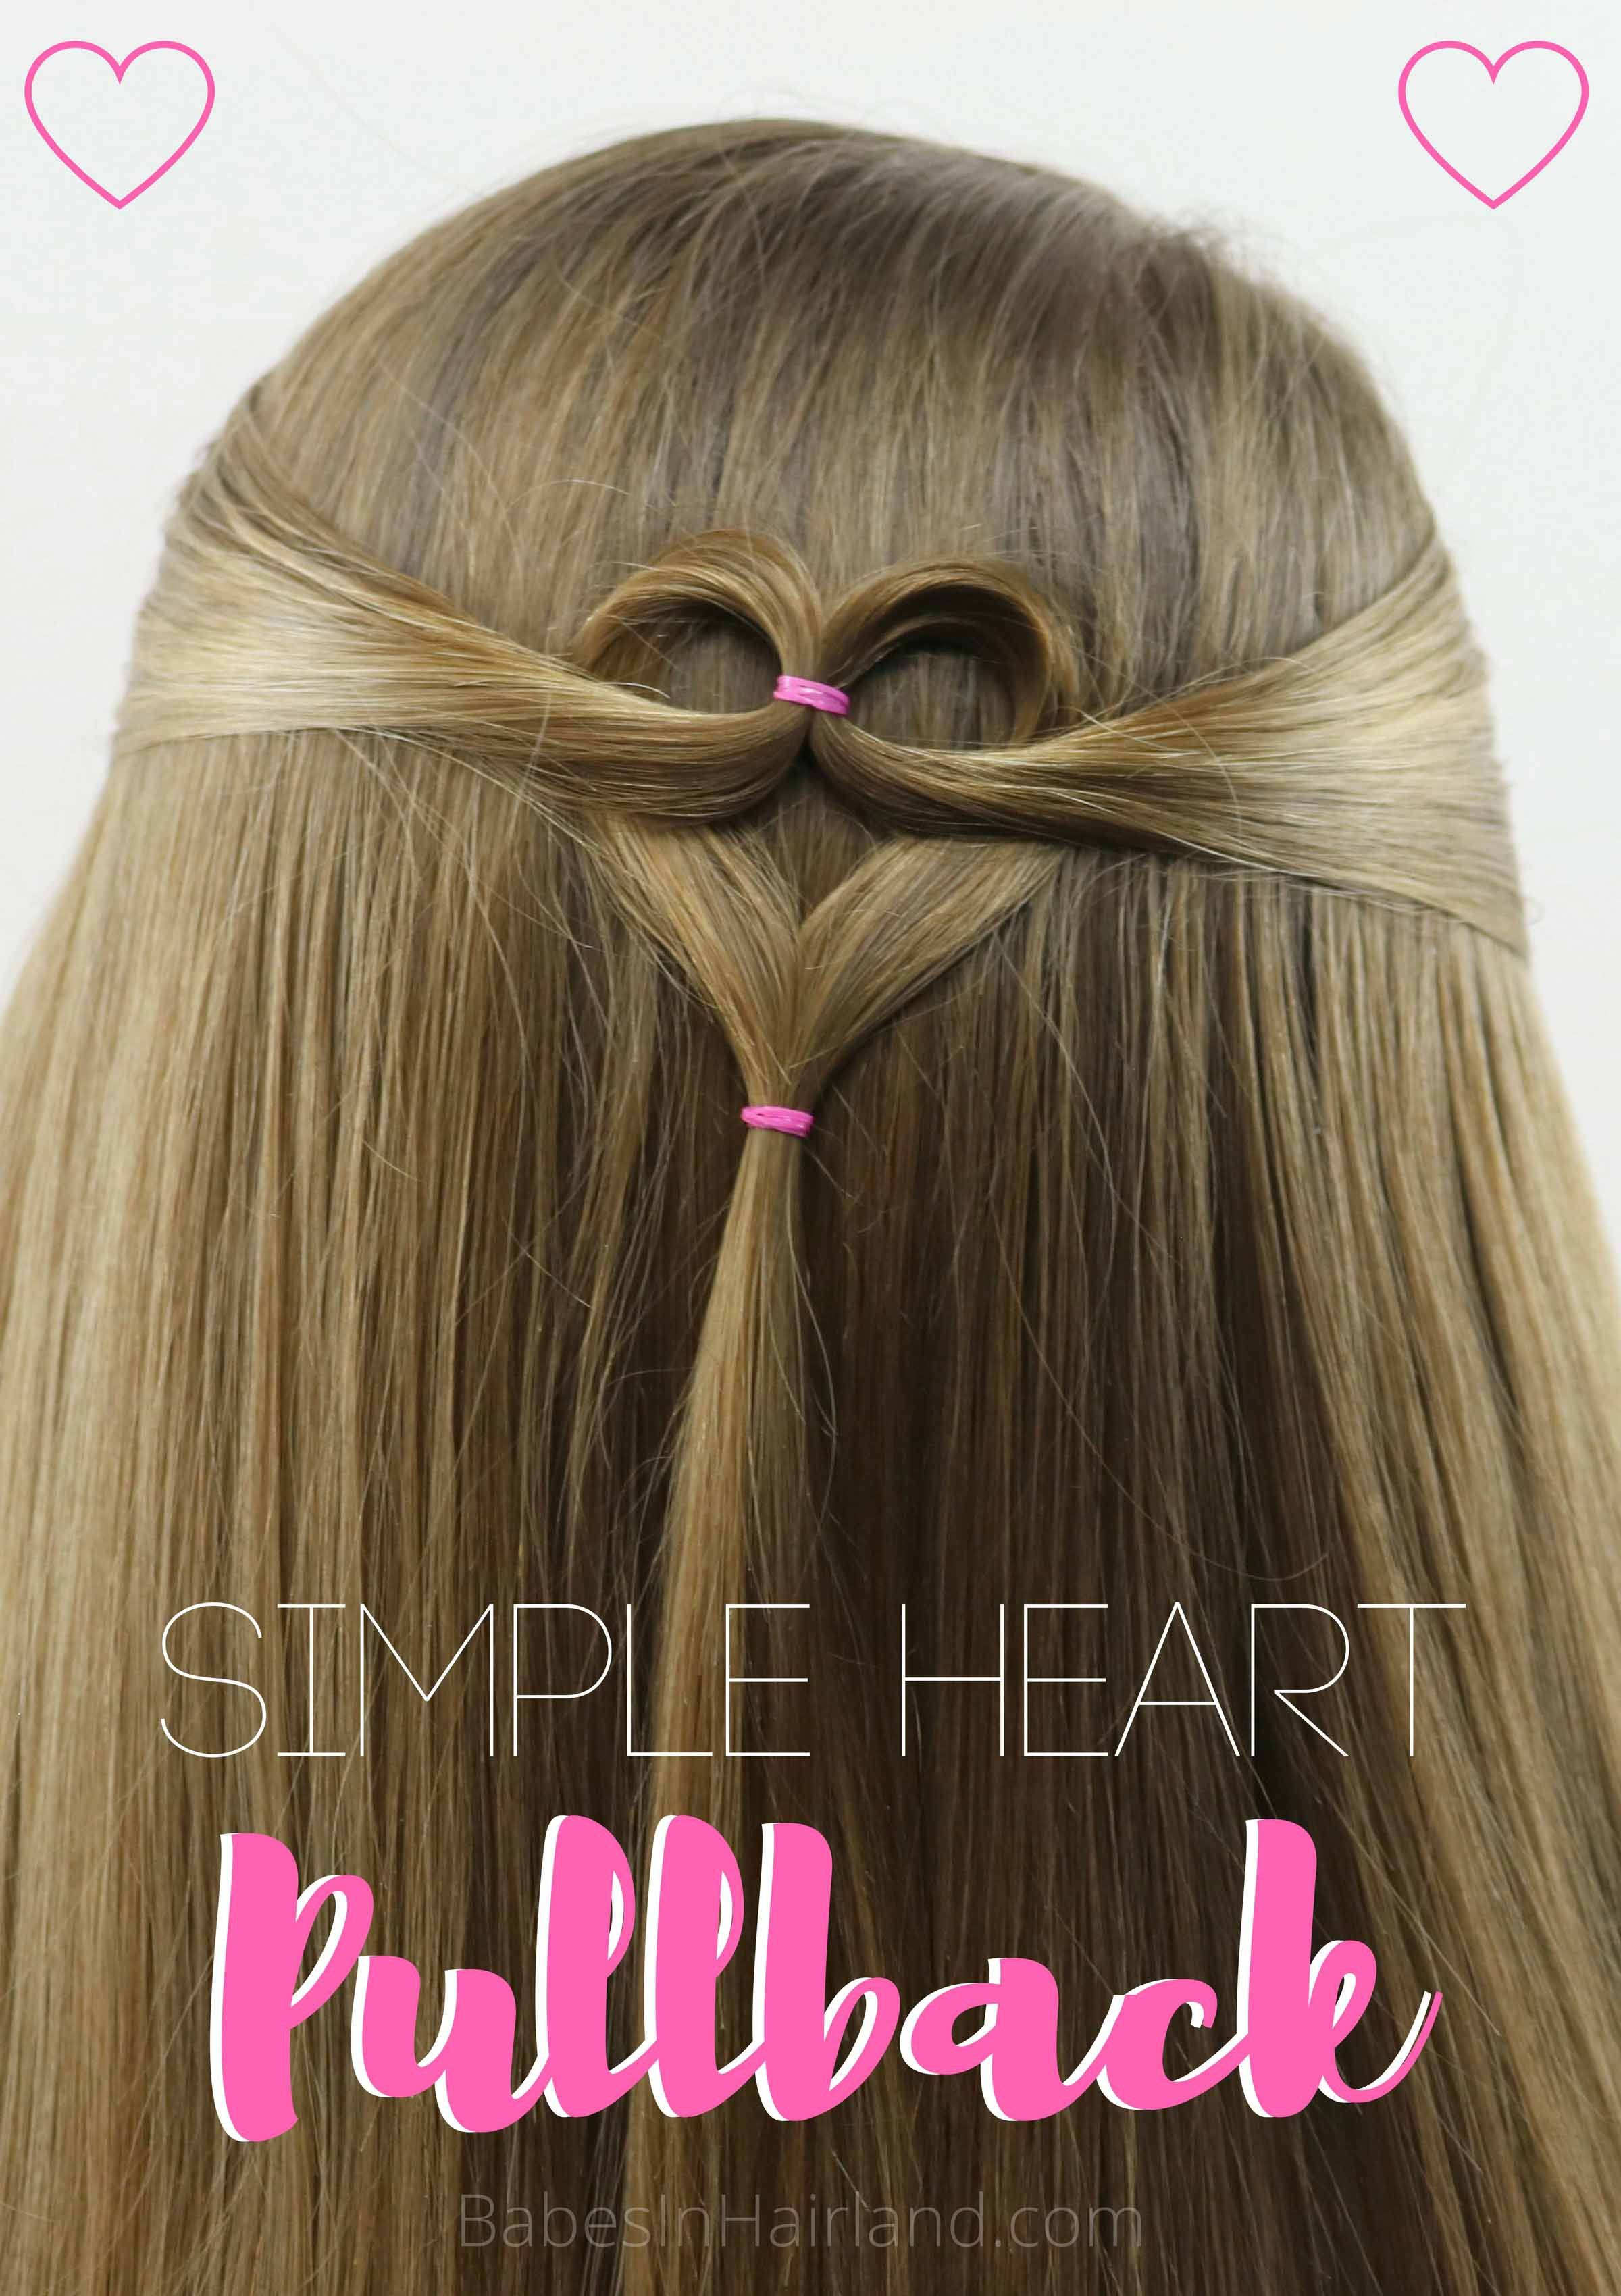 Triple Heart Pullback | Valentine's day hairstyles, Cute hairstyles for kids, Heart hair